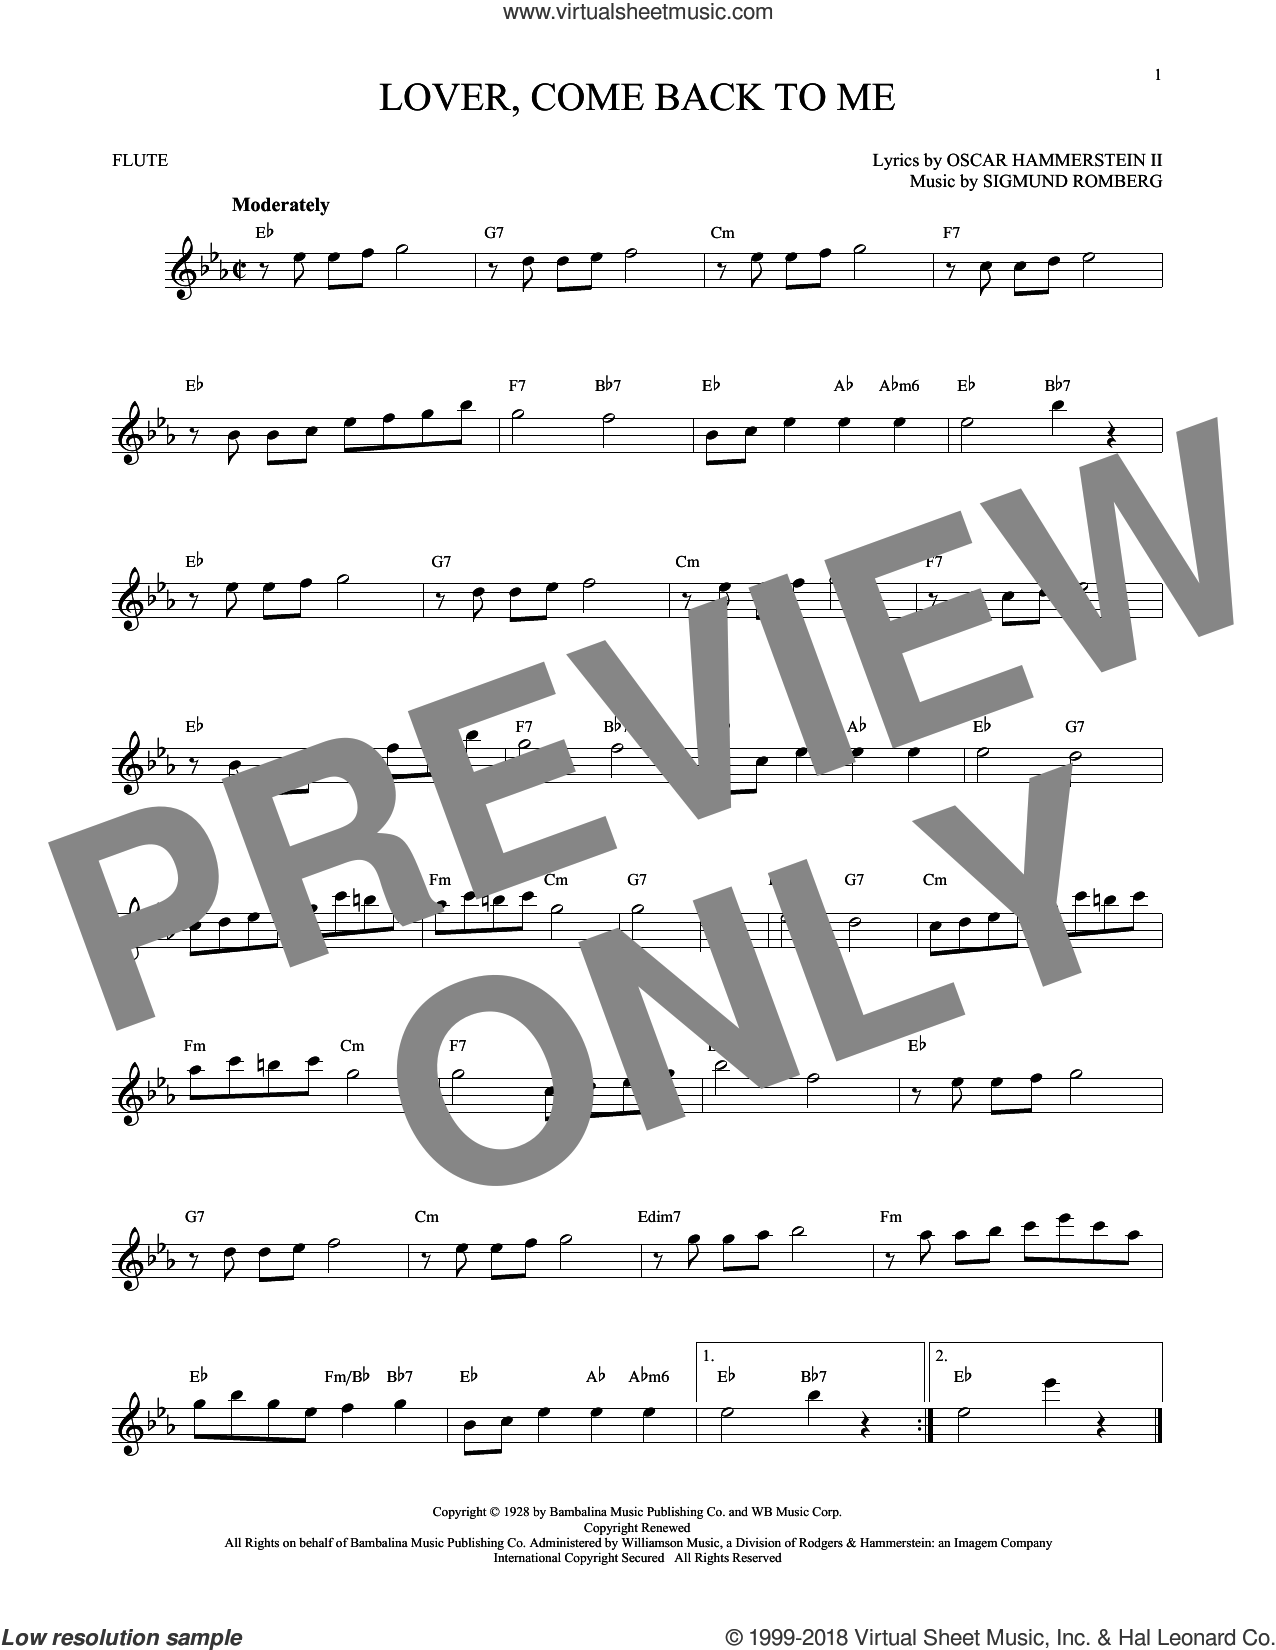 Lover, Come Back To Me sheet music for flute solo by Oscar II Hammerstein and Sigmund Romberg, intermediate